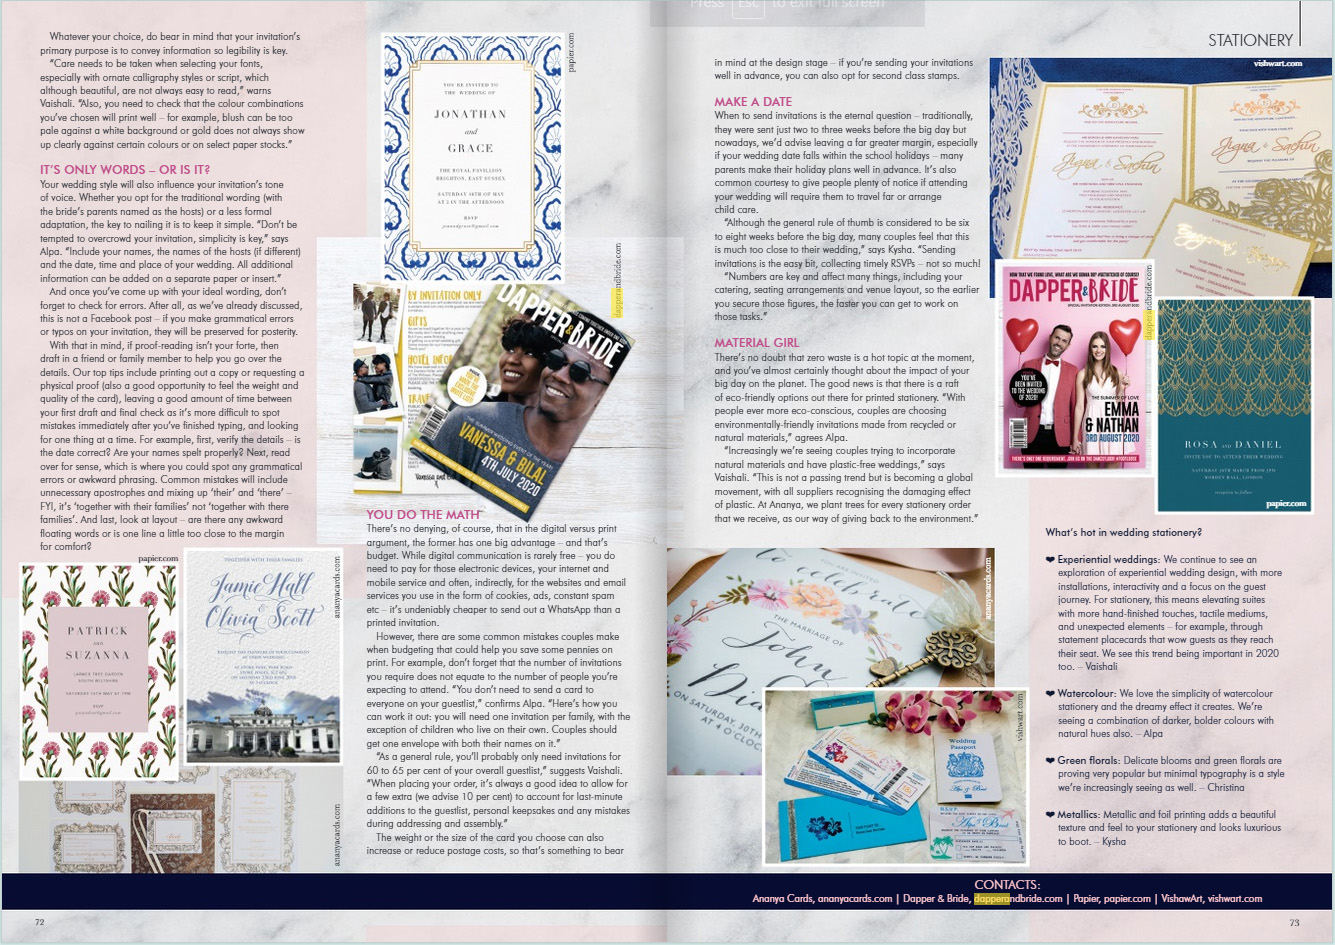 Your London Wedding Dapper and Bride Feature July 2019 pg2-3.jpg